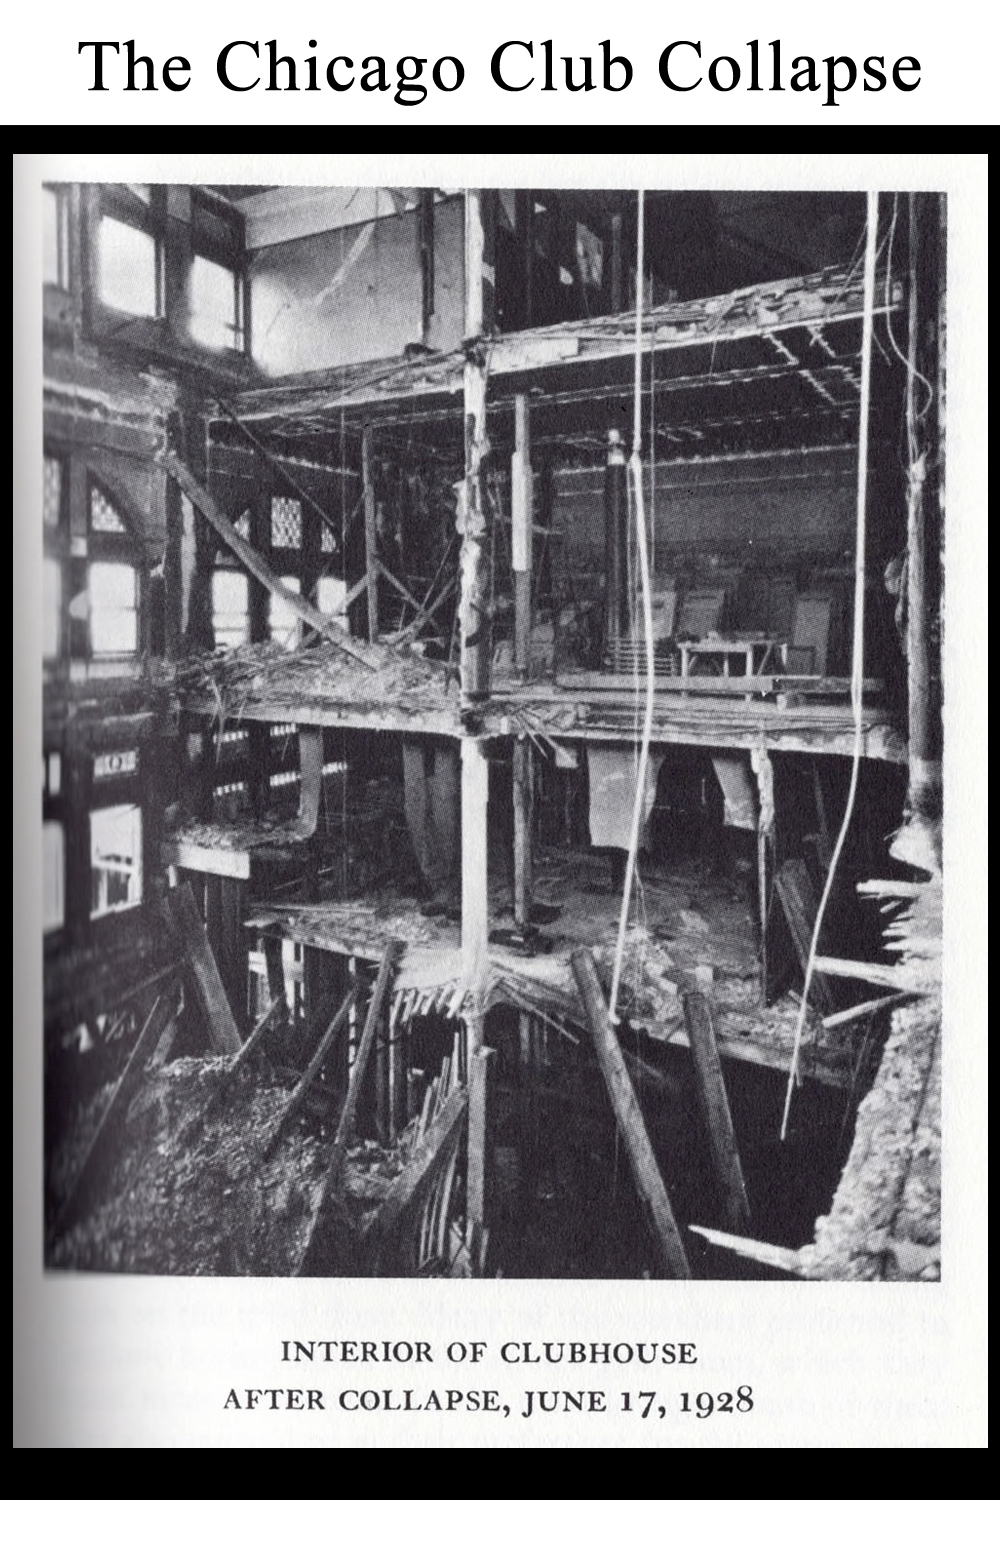 Chicago Club interior after it's collapse in 1927.